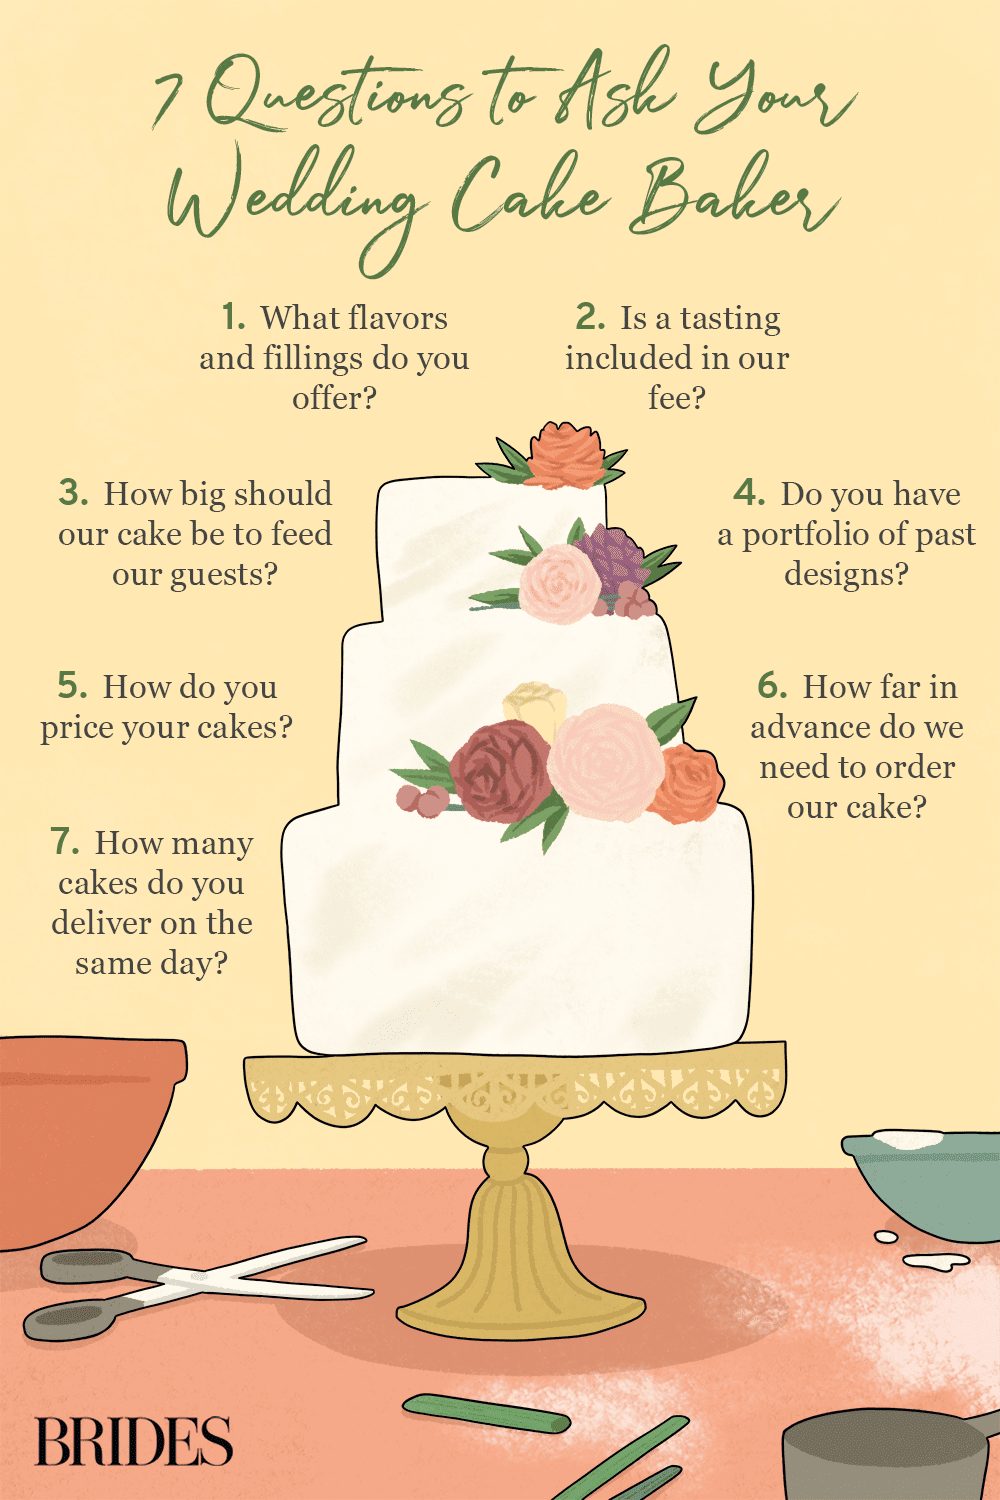 7 Questions to Ask Your Wedding Cake Baker